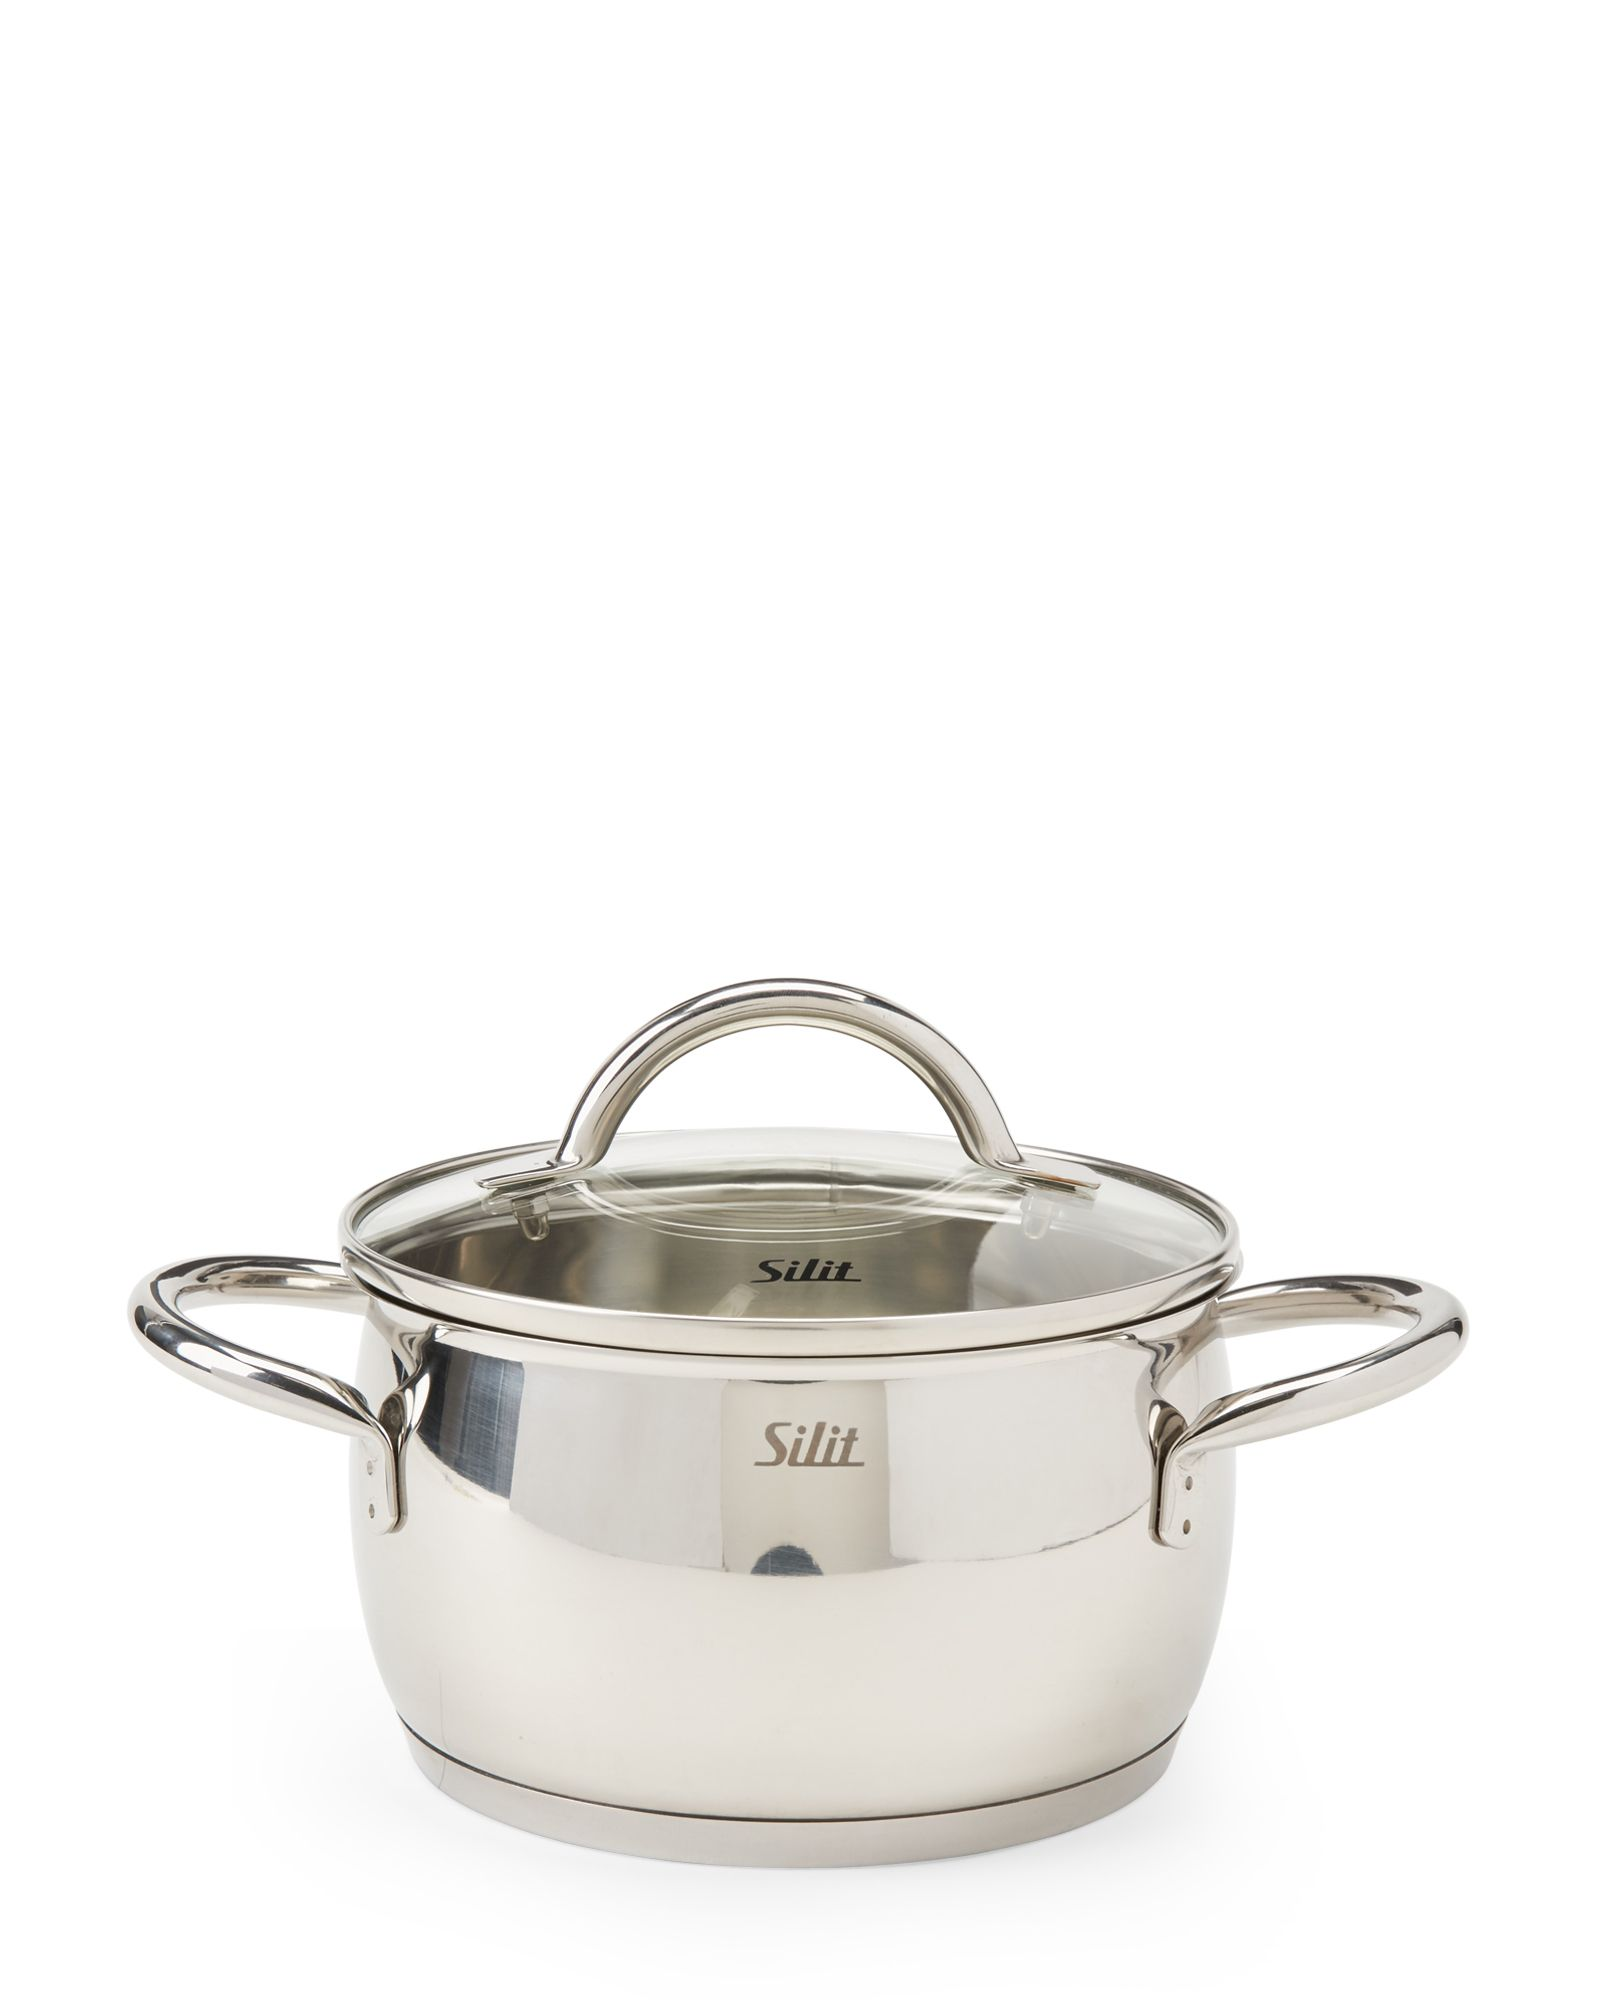 Silit 2.1 Quart Covered Stainless Steel Casserole Pot